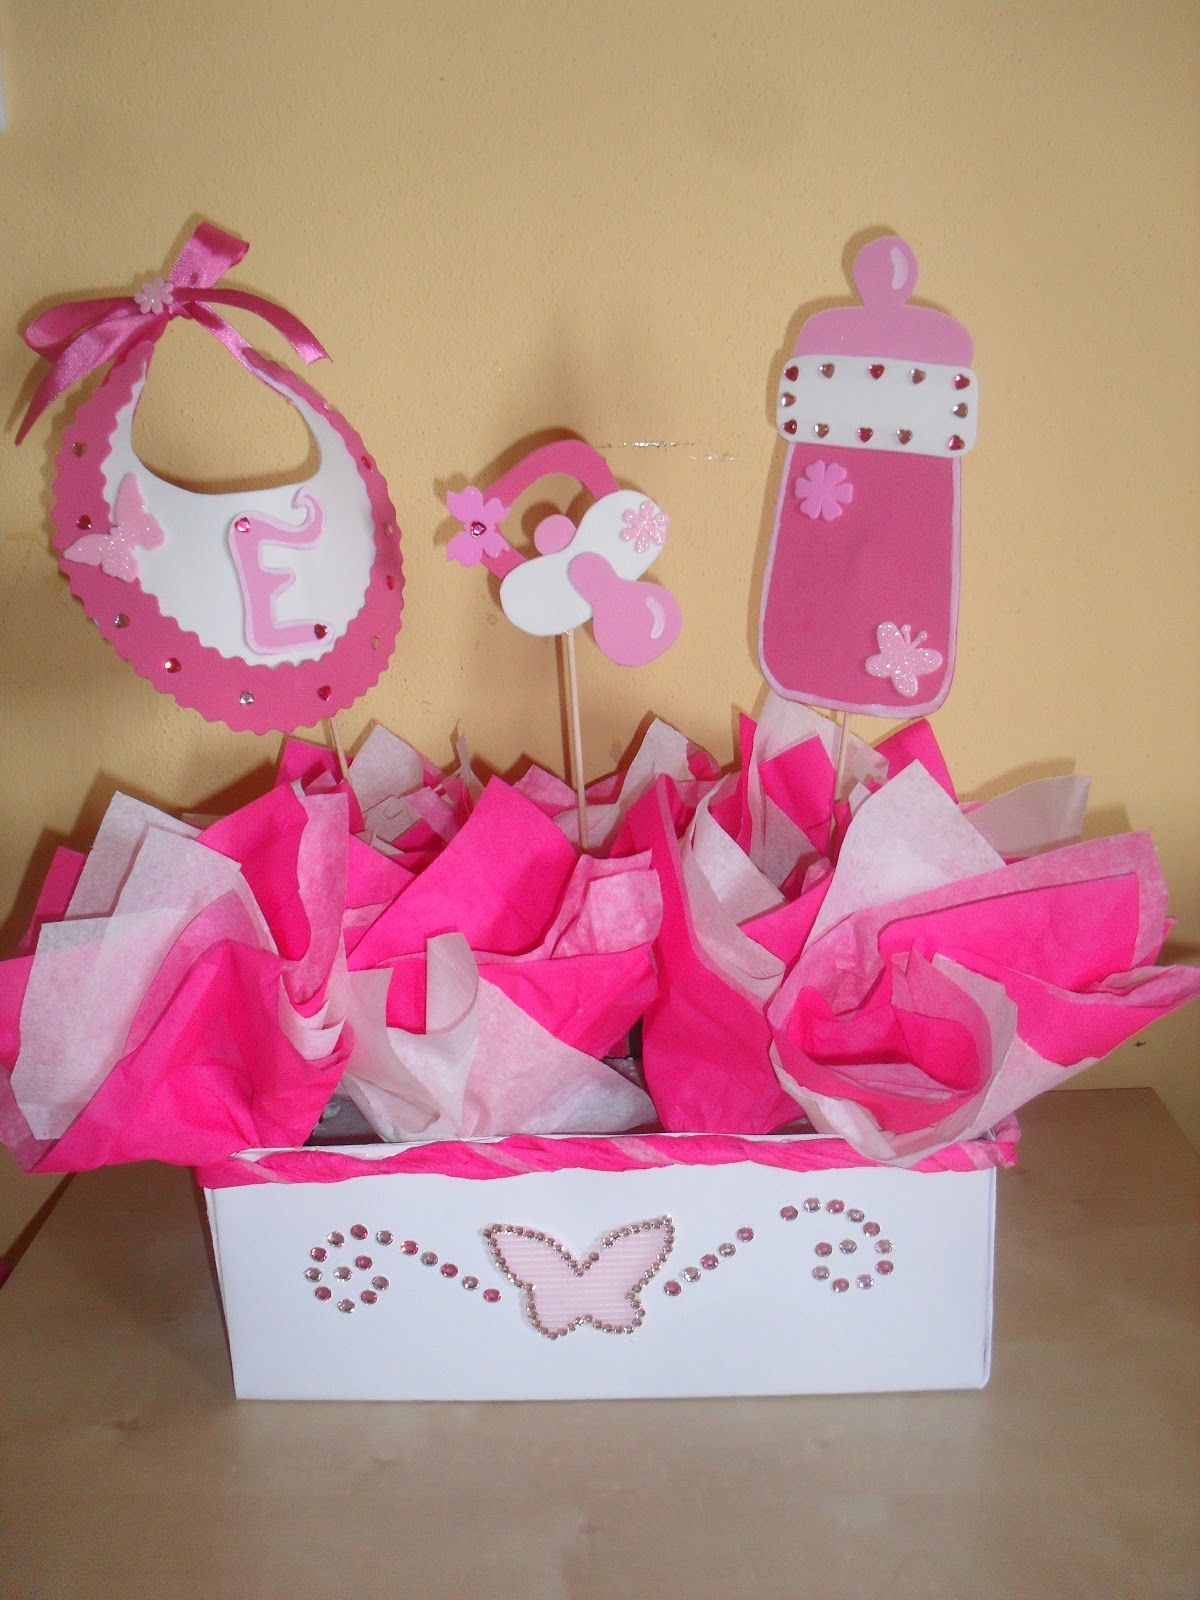 N wonderful decoraciones para baby shower en puerto rico for Decoracion para baby shower en casa